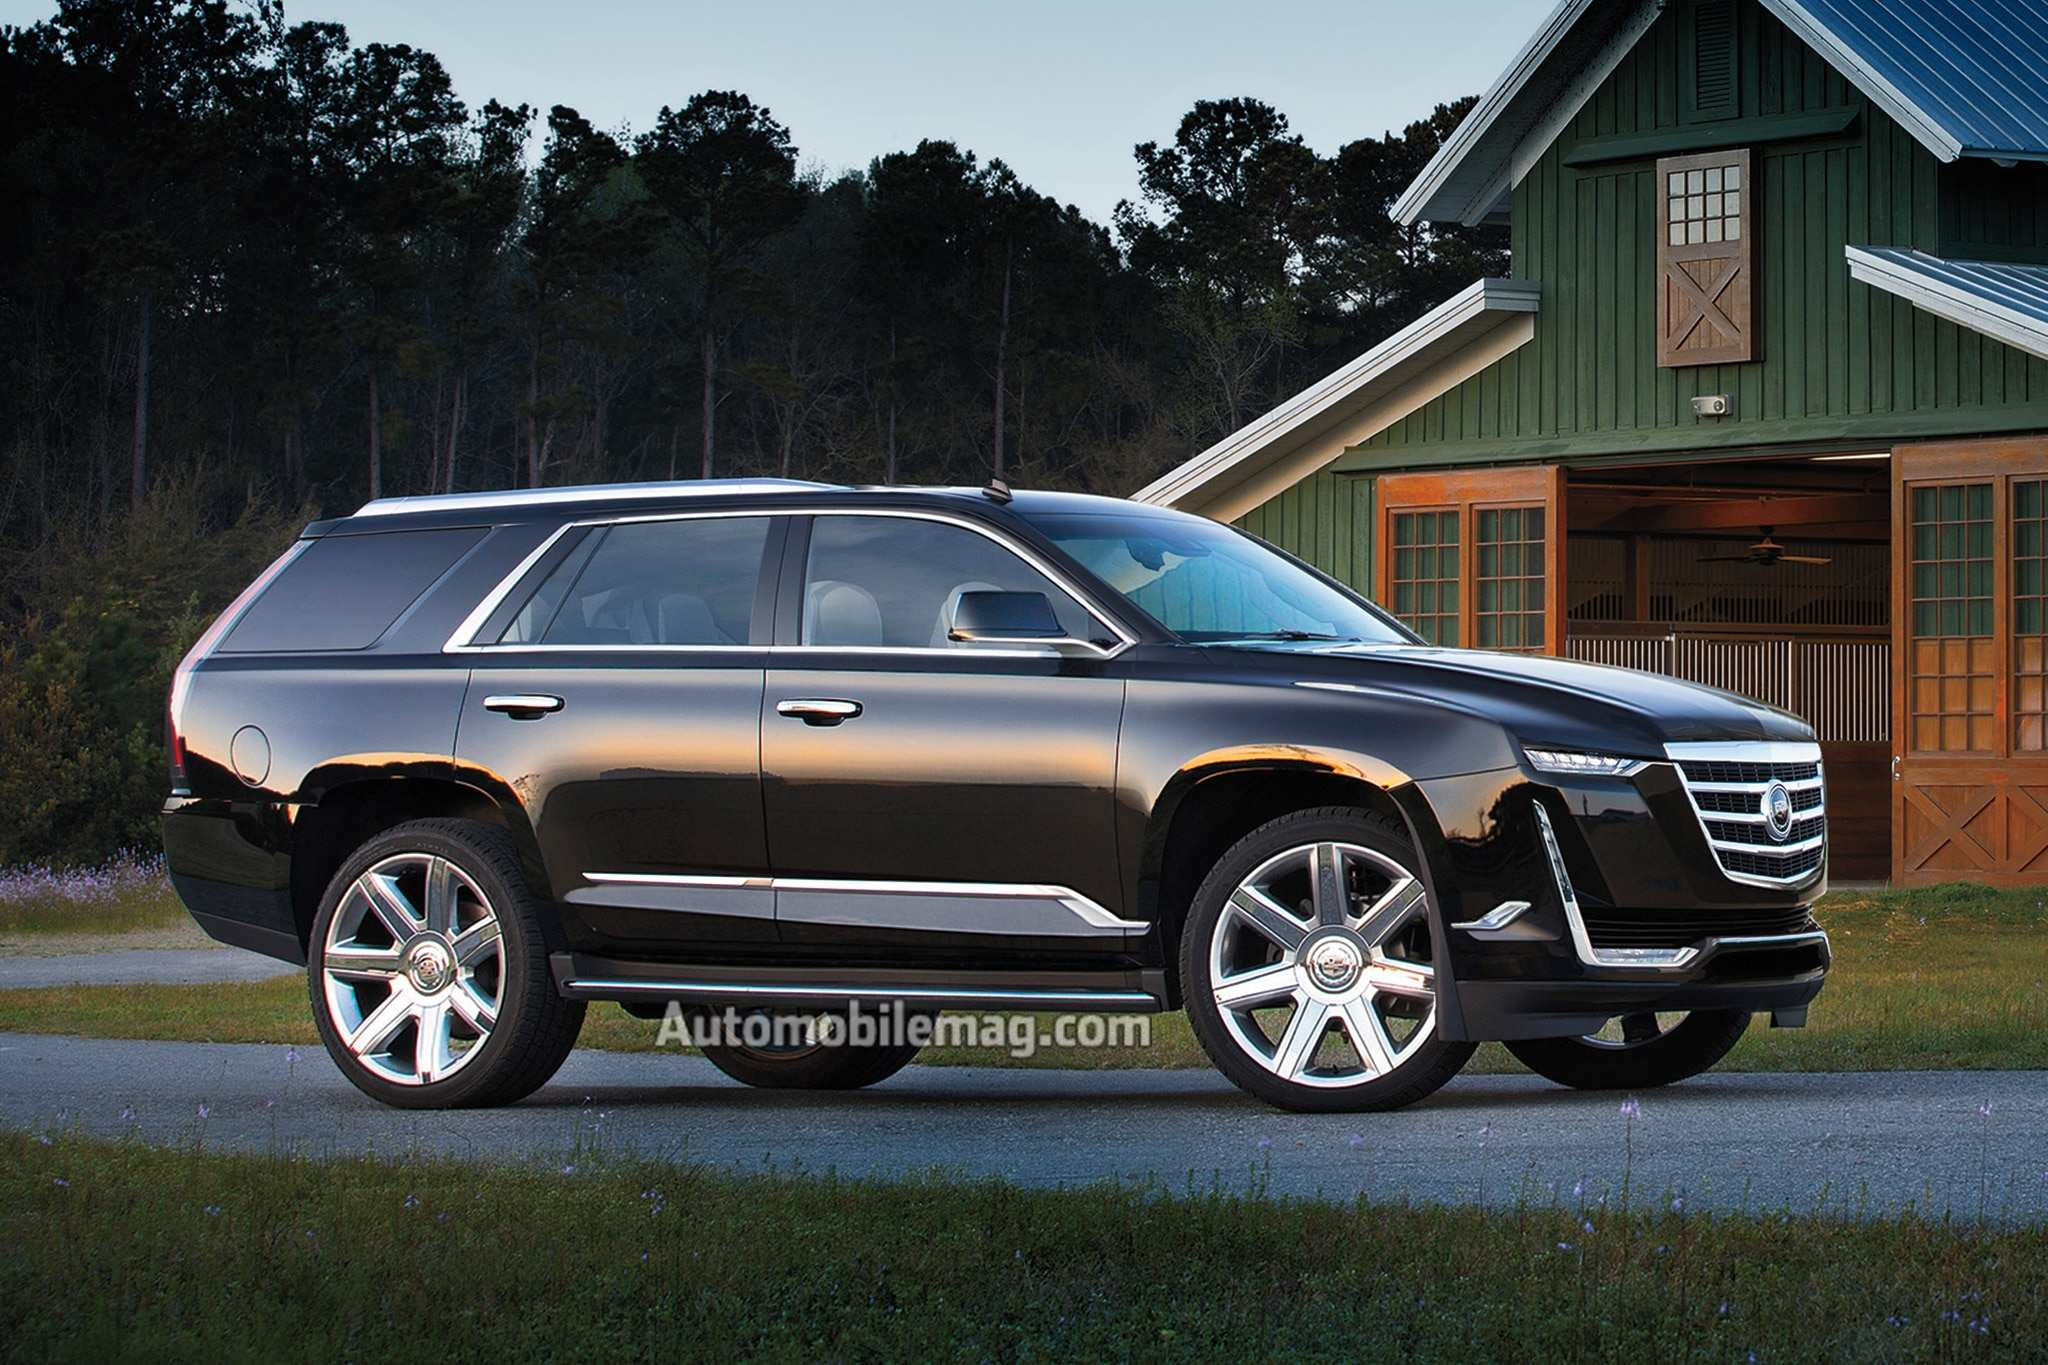 30 Best Review 2019 Cadillac Escalade Price Spy Shoot for 2019 Cadillac Escalade Price